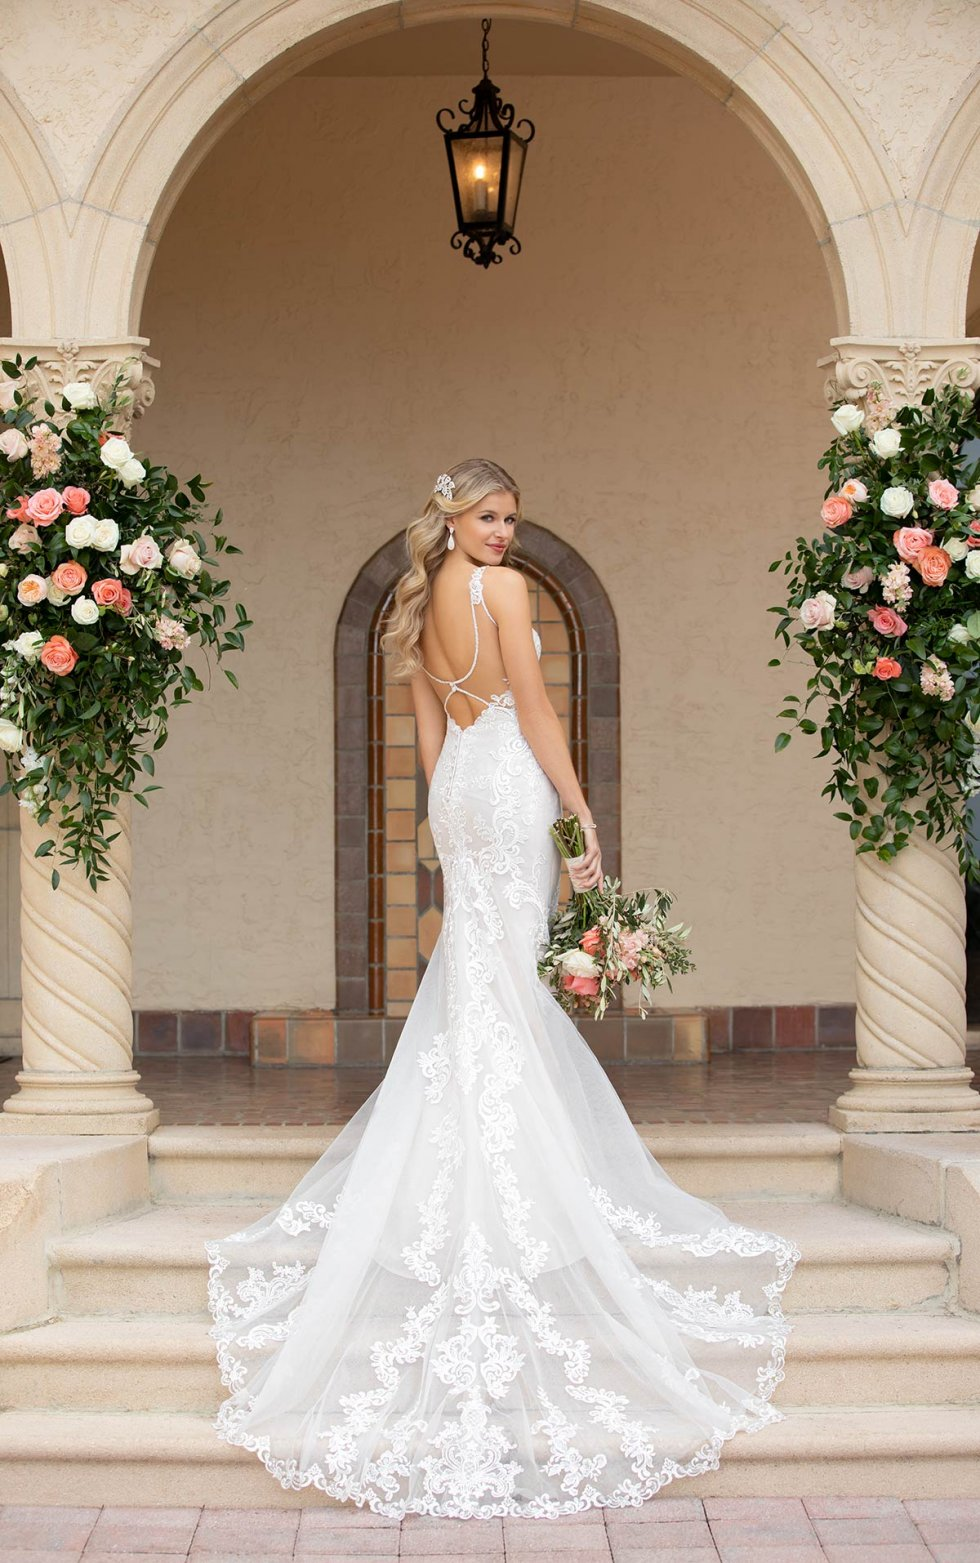 Stella York Bliss Bridal Salon Boutique,Country Style Barn Wedding Rustic Mother Of The Bride Dresses